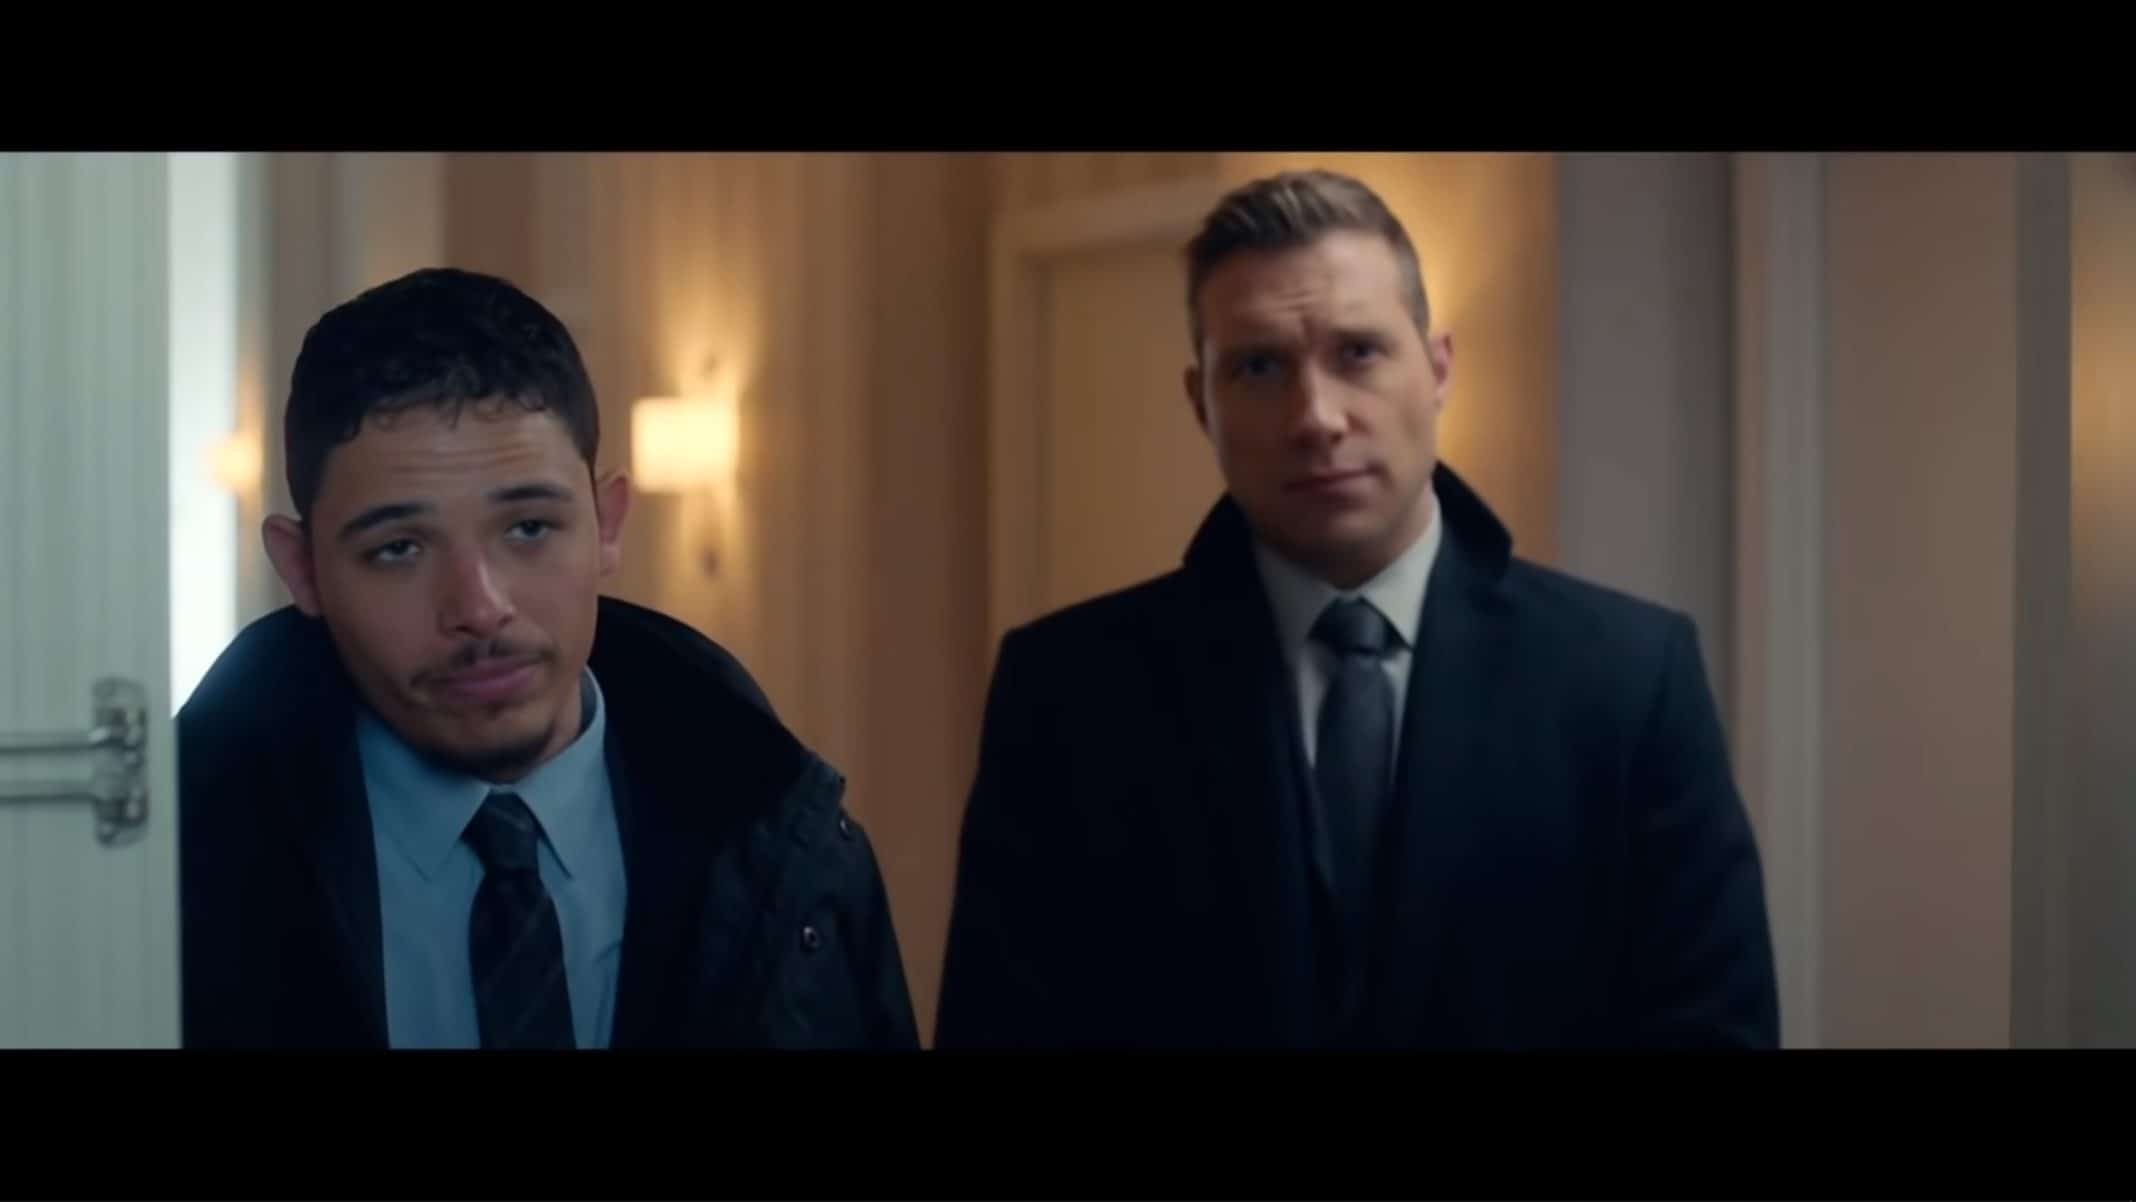 Agent Hall (Anthony Ramos) and Agent Nivens (Jai Courtney) meeting Tom.